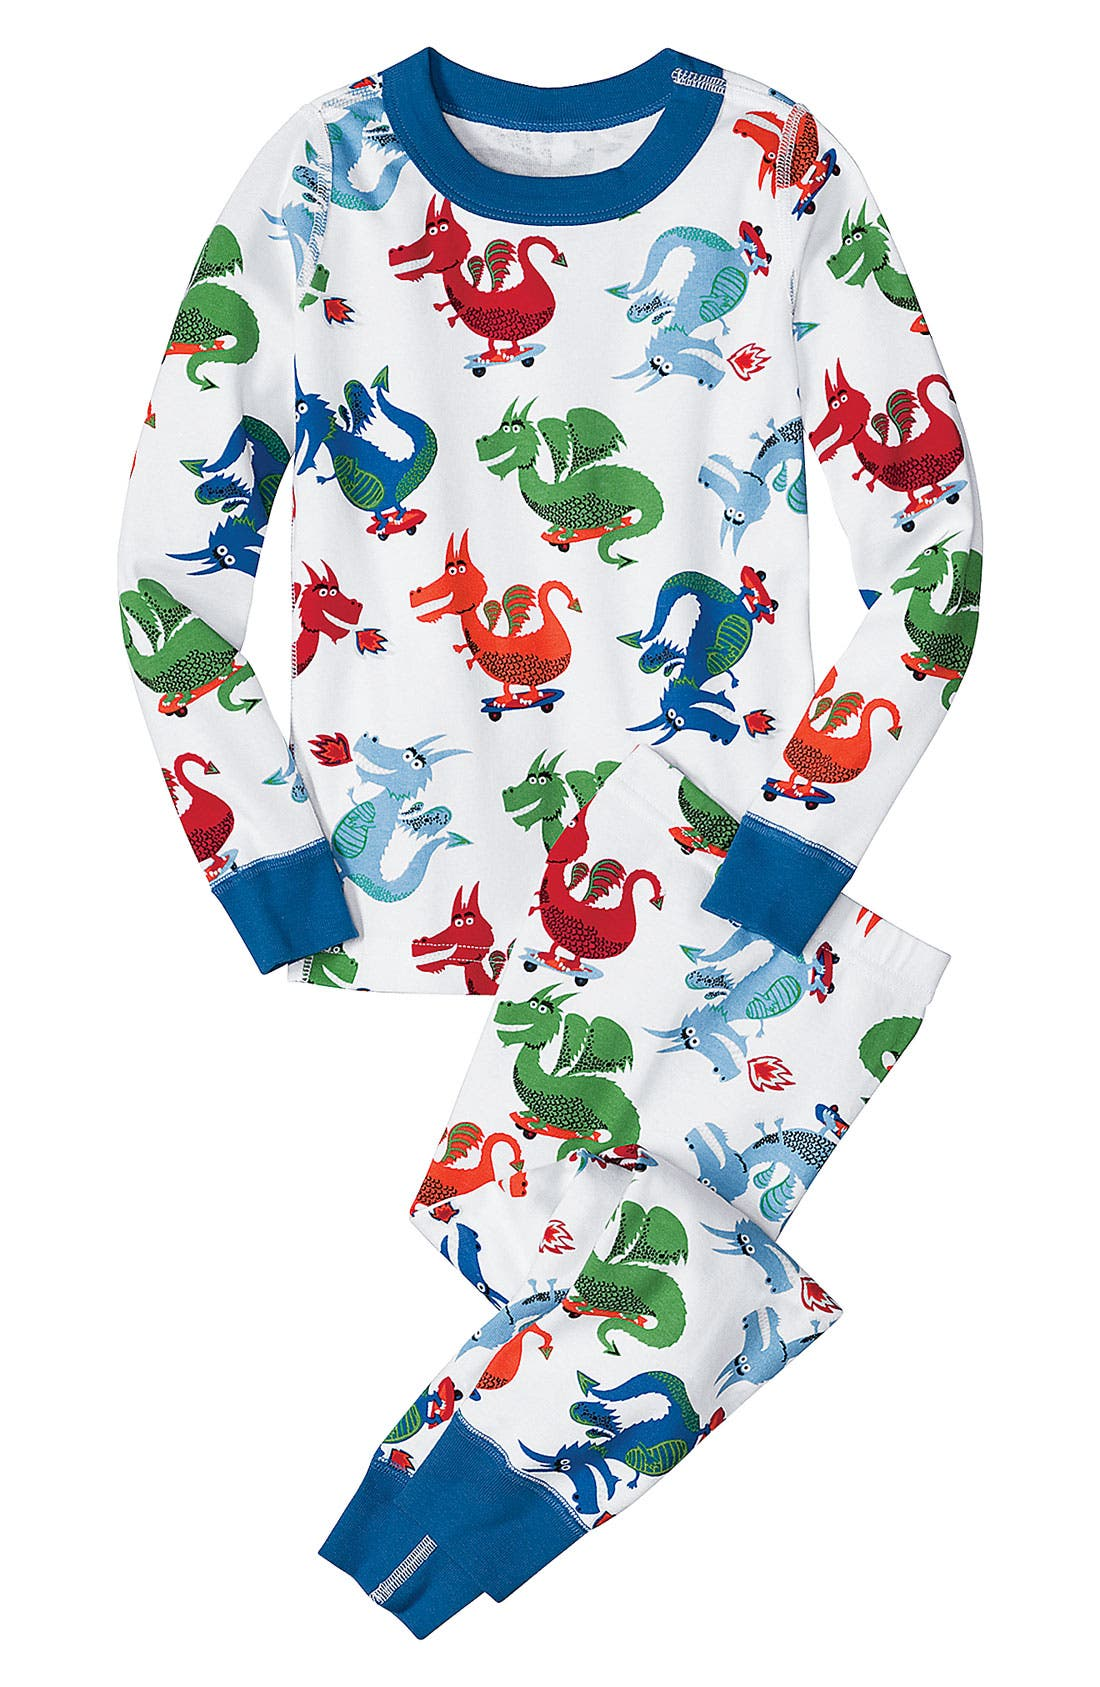 Main Image - Hanna Andersson Two Piece Fitted Pajamas (Little Boys)